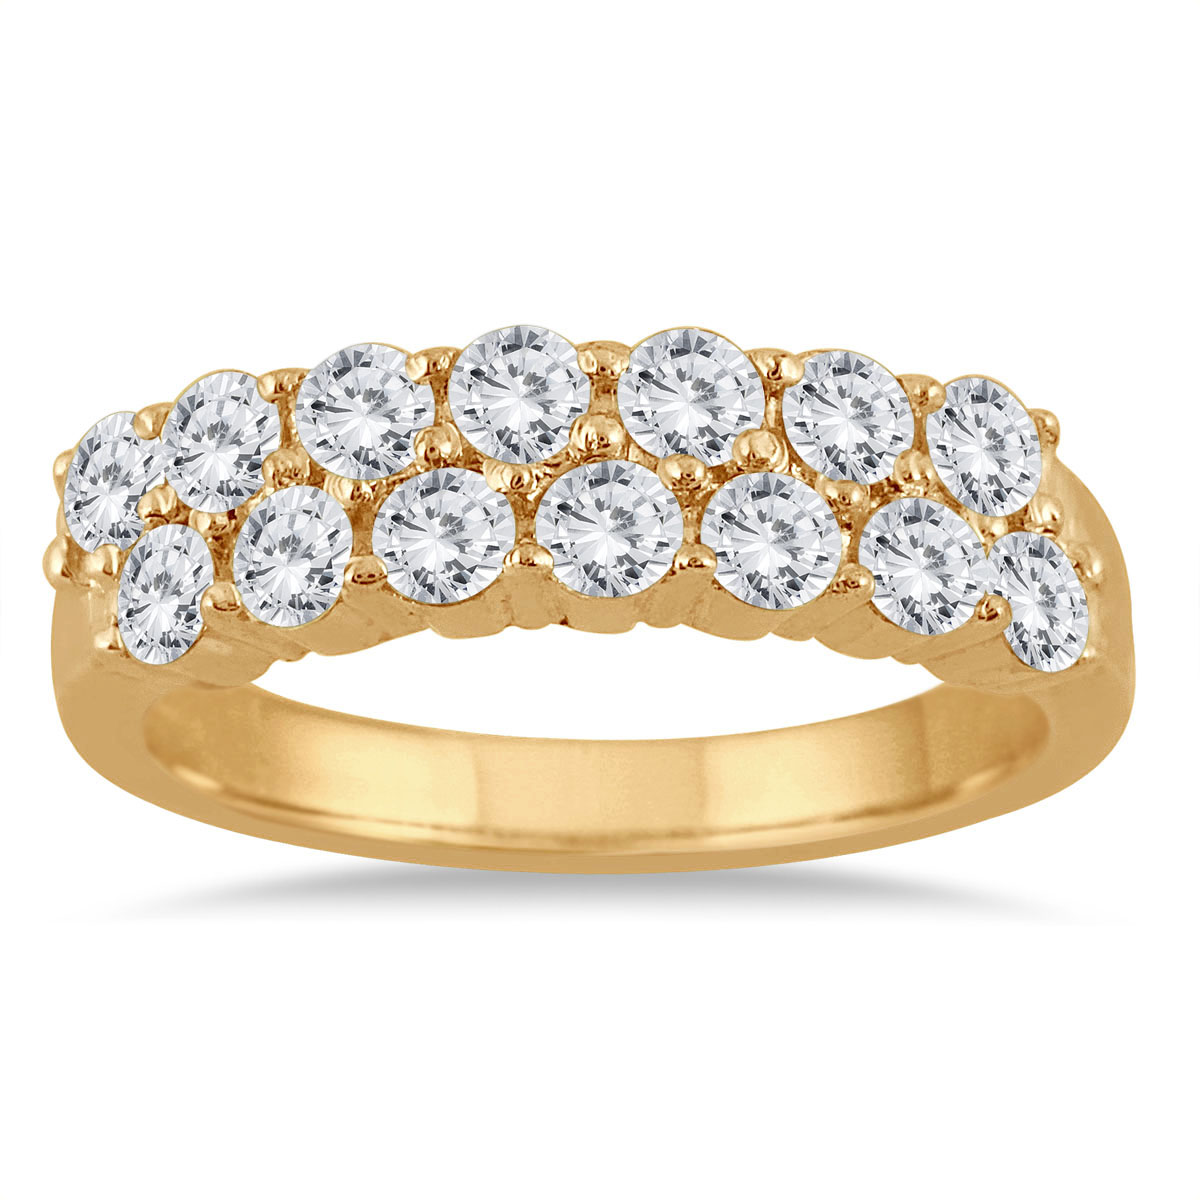 1 1/4 Carat TW Double Row Diamond Wedding Band in 10K Yellow Gold